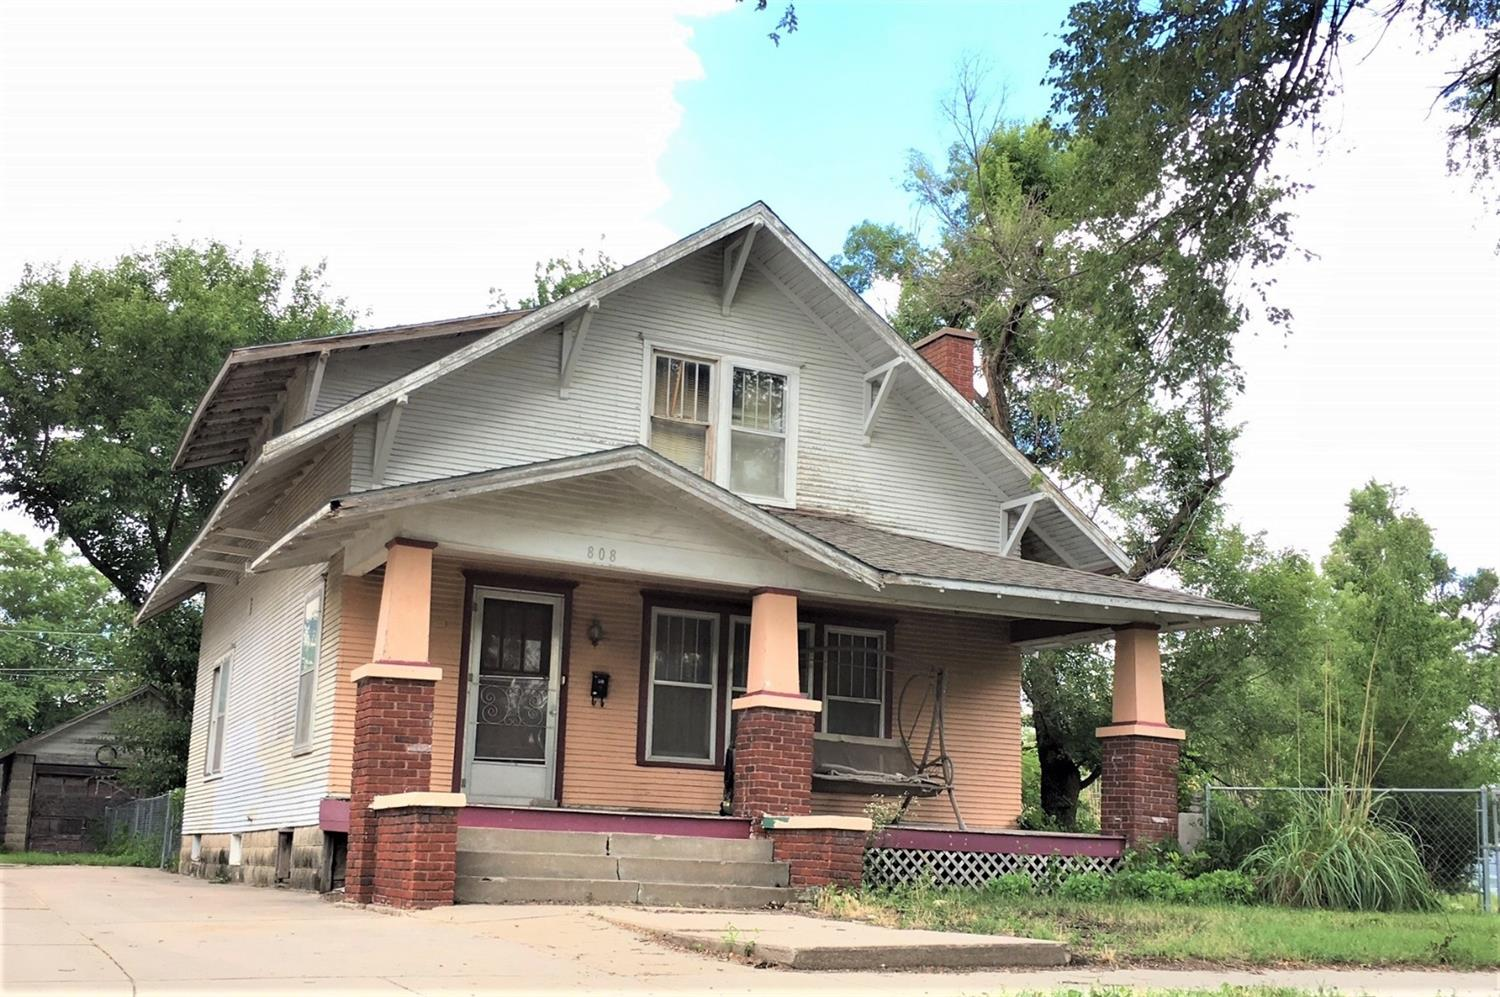 GRACIOUS!....How spacious! With some TLC this 4 bed(main floor/non-conf.) 1.75 bath home could be your pride and joy. Original woodwork. Gas fireplace. Large living room and dining room. Partial, unfinished basement. HUGE double/corner lot with fenced in yard. What a bargain!